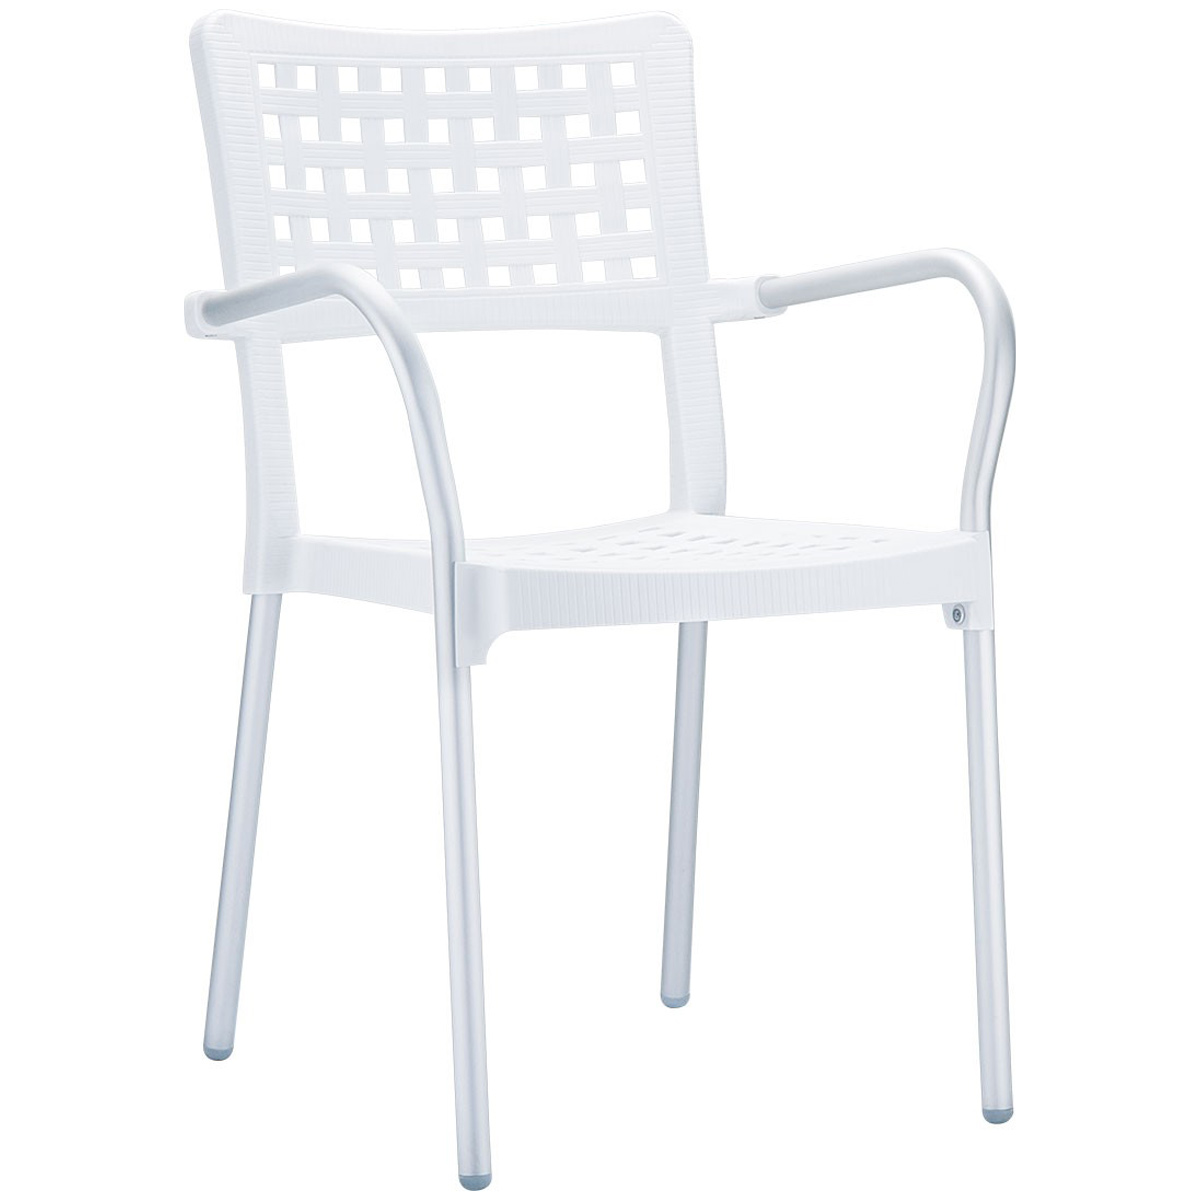 neo 200041e perforated plastic outdoor chair